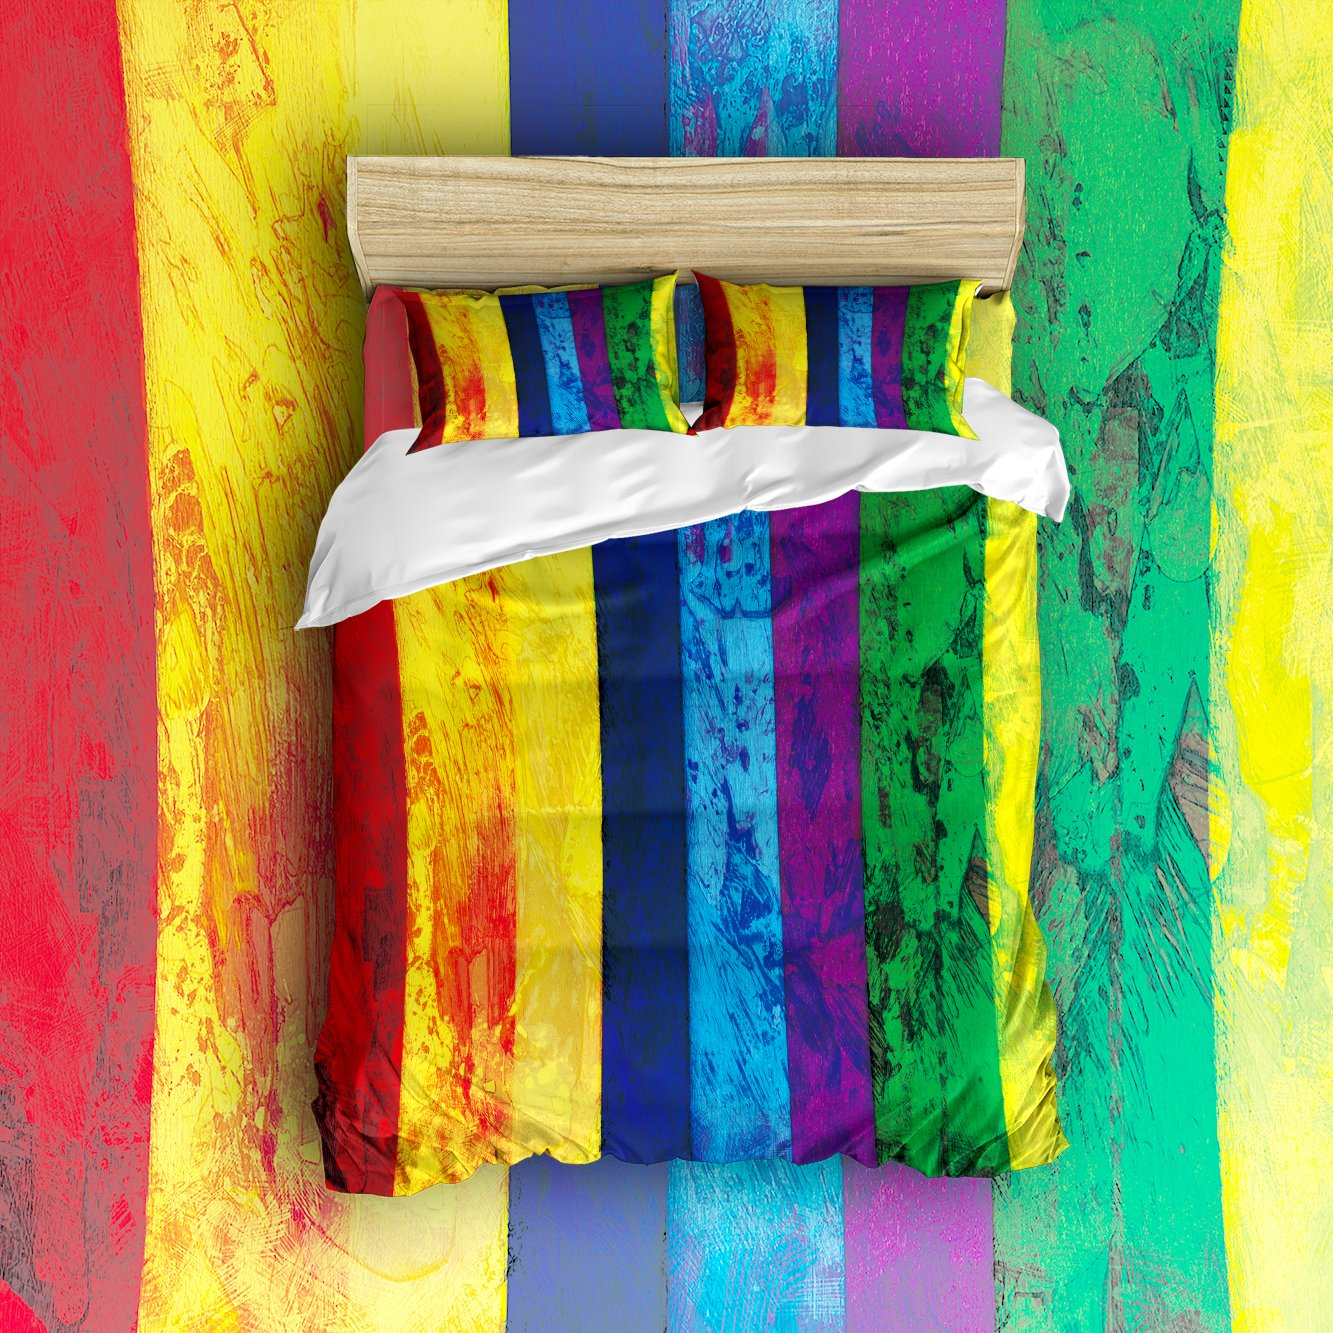 Libaoge 4 Piece Bed Sheets Set, Classic Retro Colorful Rainbow Stripes, 1 Flat Sheet 1 Duvet Cover and 2 Pillow Cases